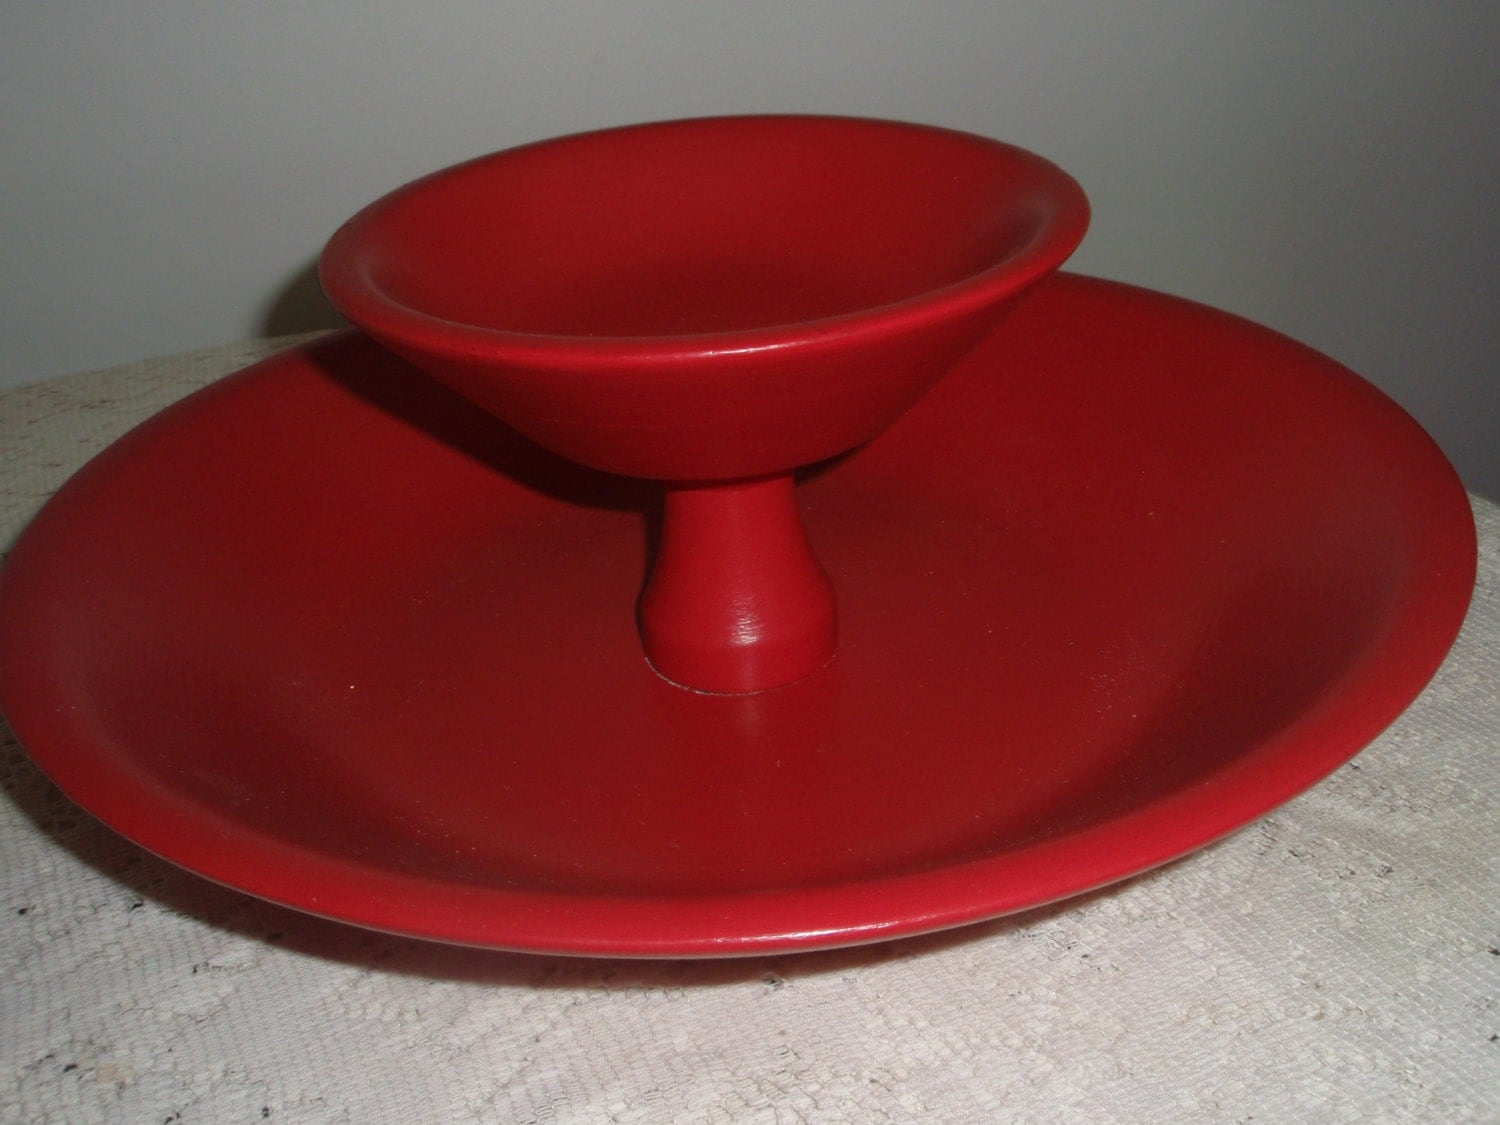 Two tiered wood bowl solid wood bowl painted red red party - Tiered fruit bowl ...